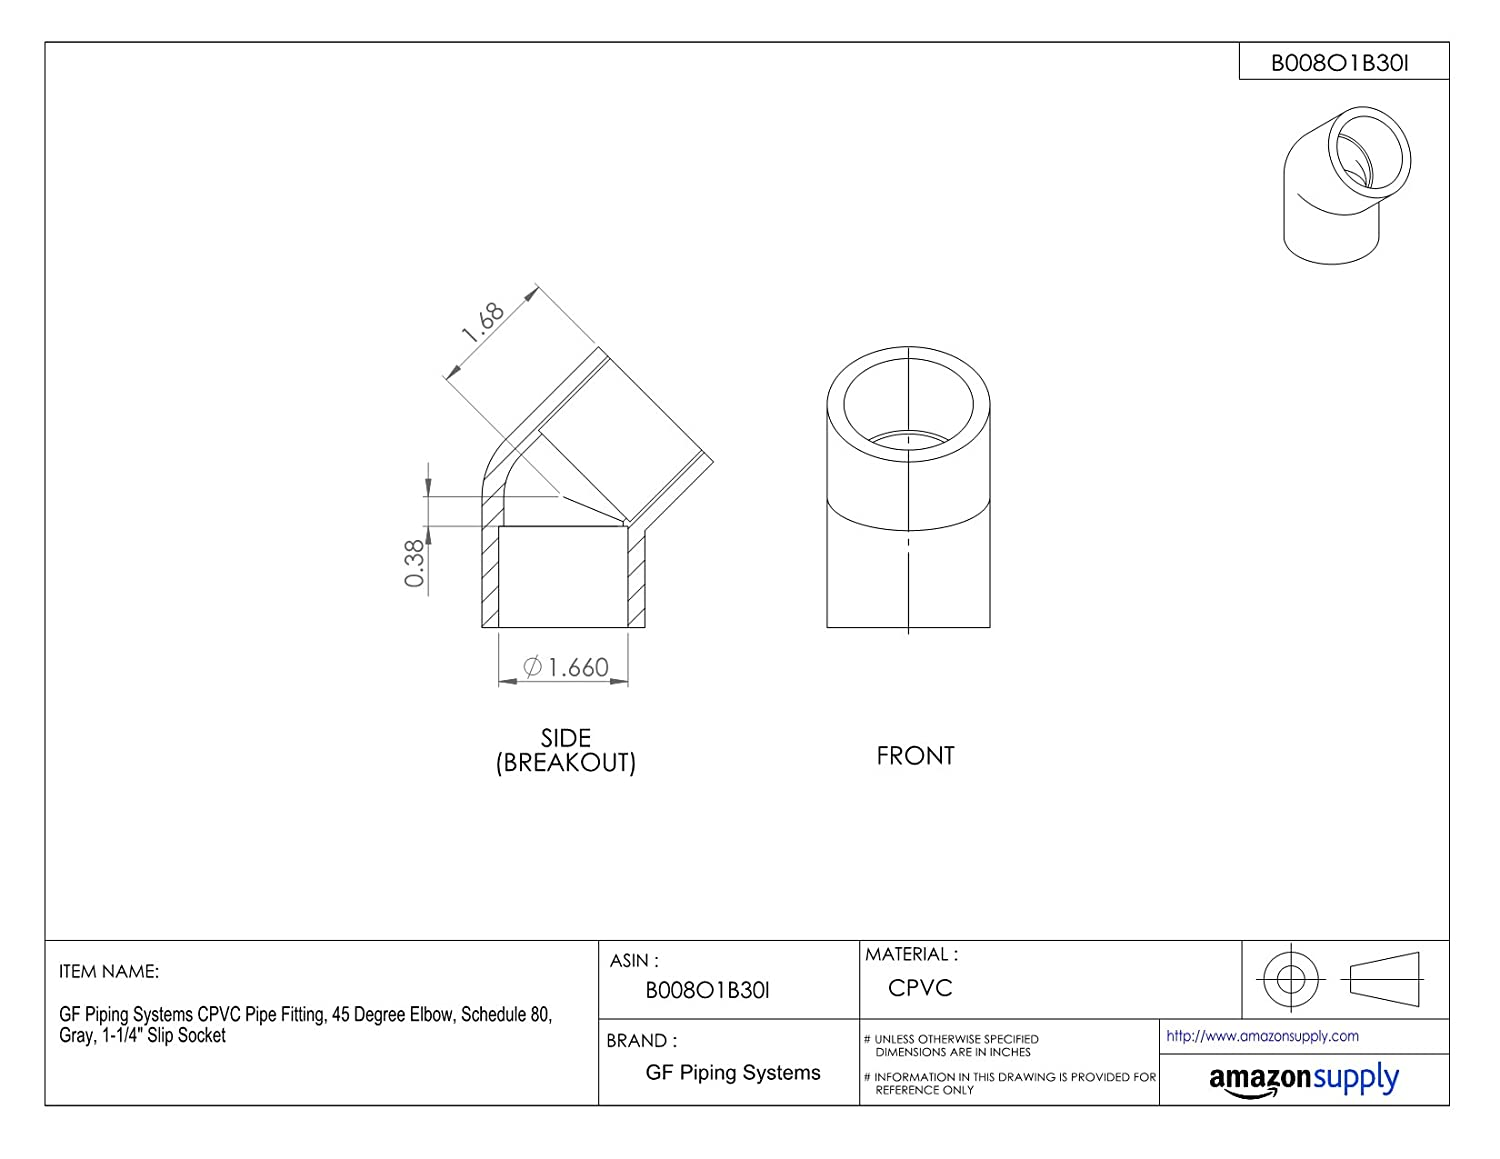 Gray 45 Degree Elbow 3//4 Slip Socket Schedule 80 GF Piping Systems CPVC Pipe Fitting